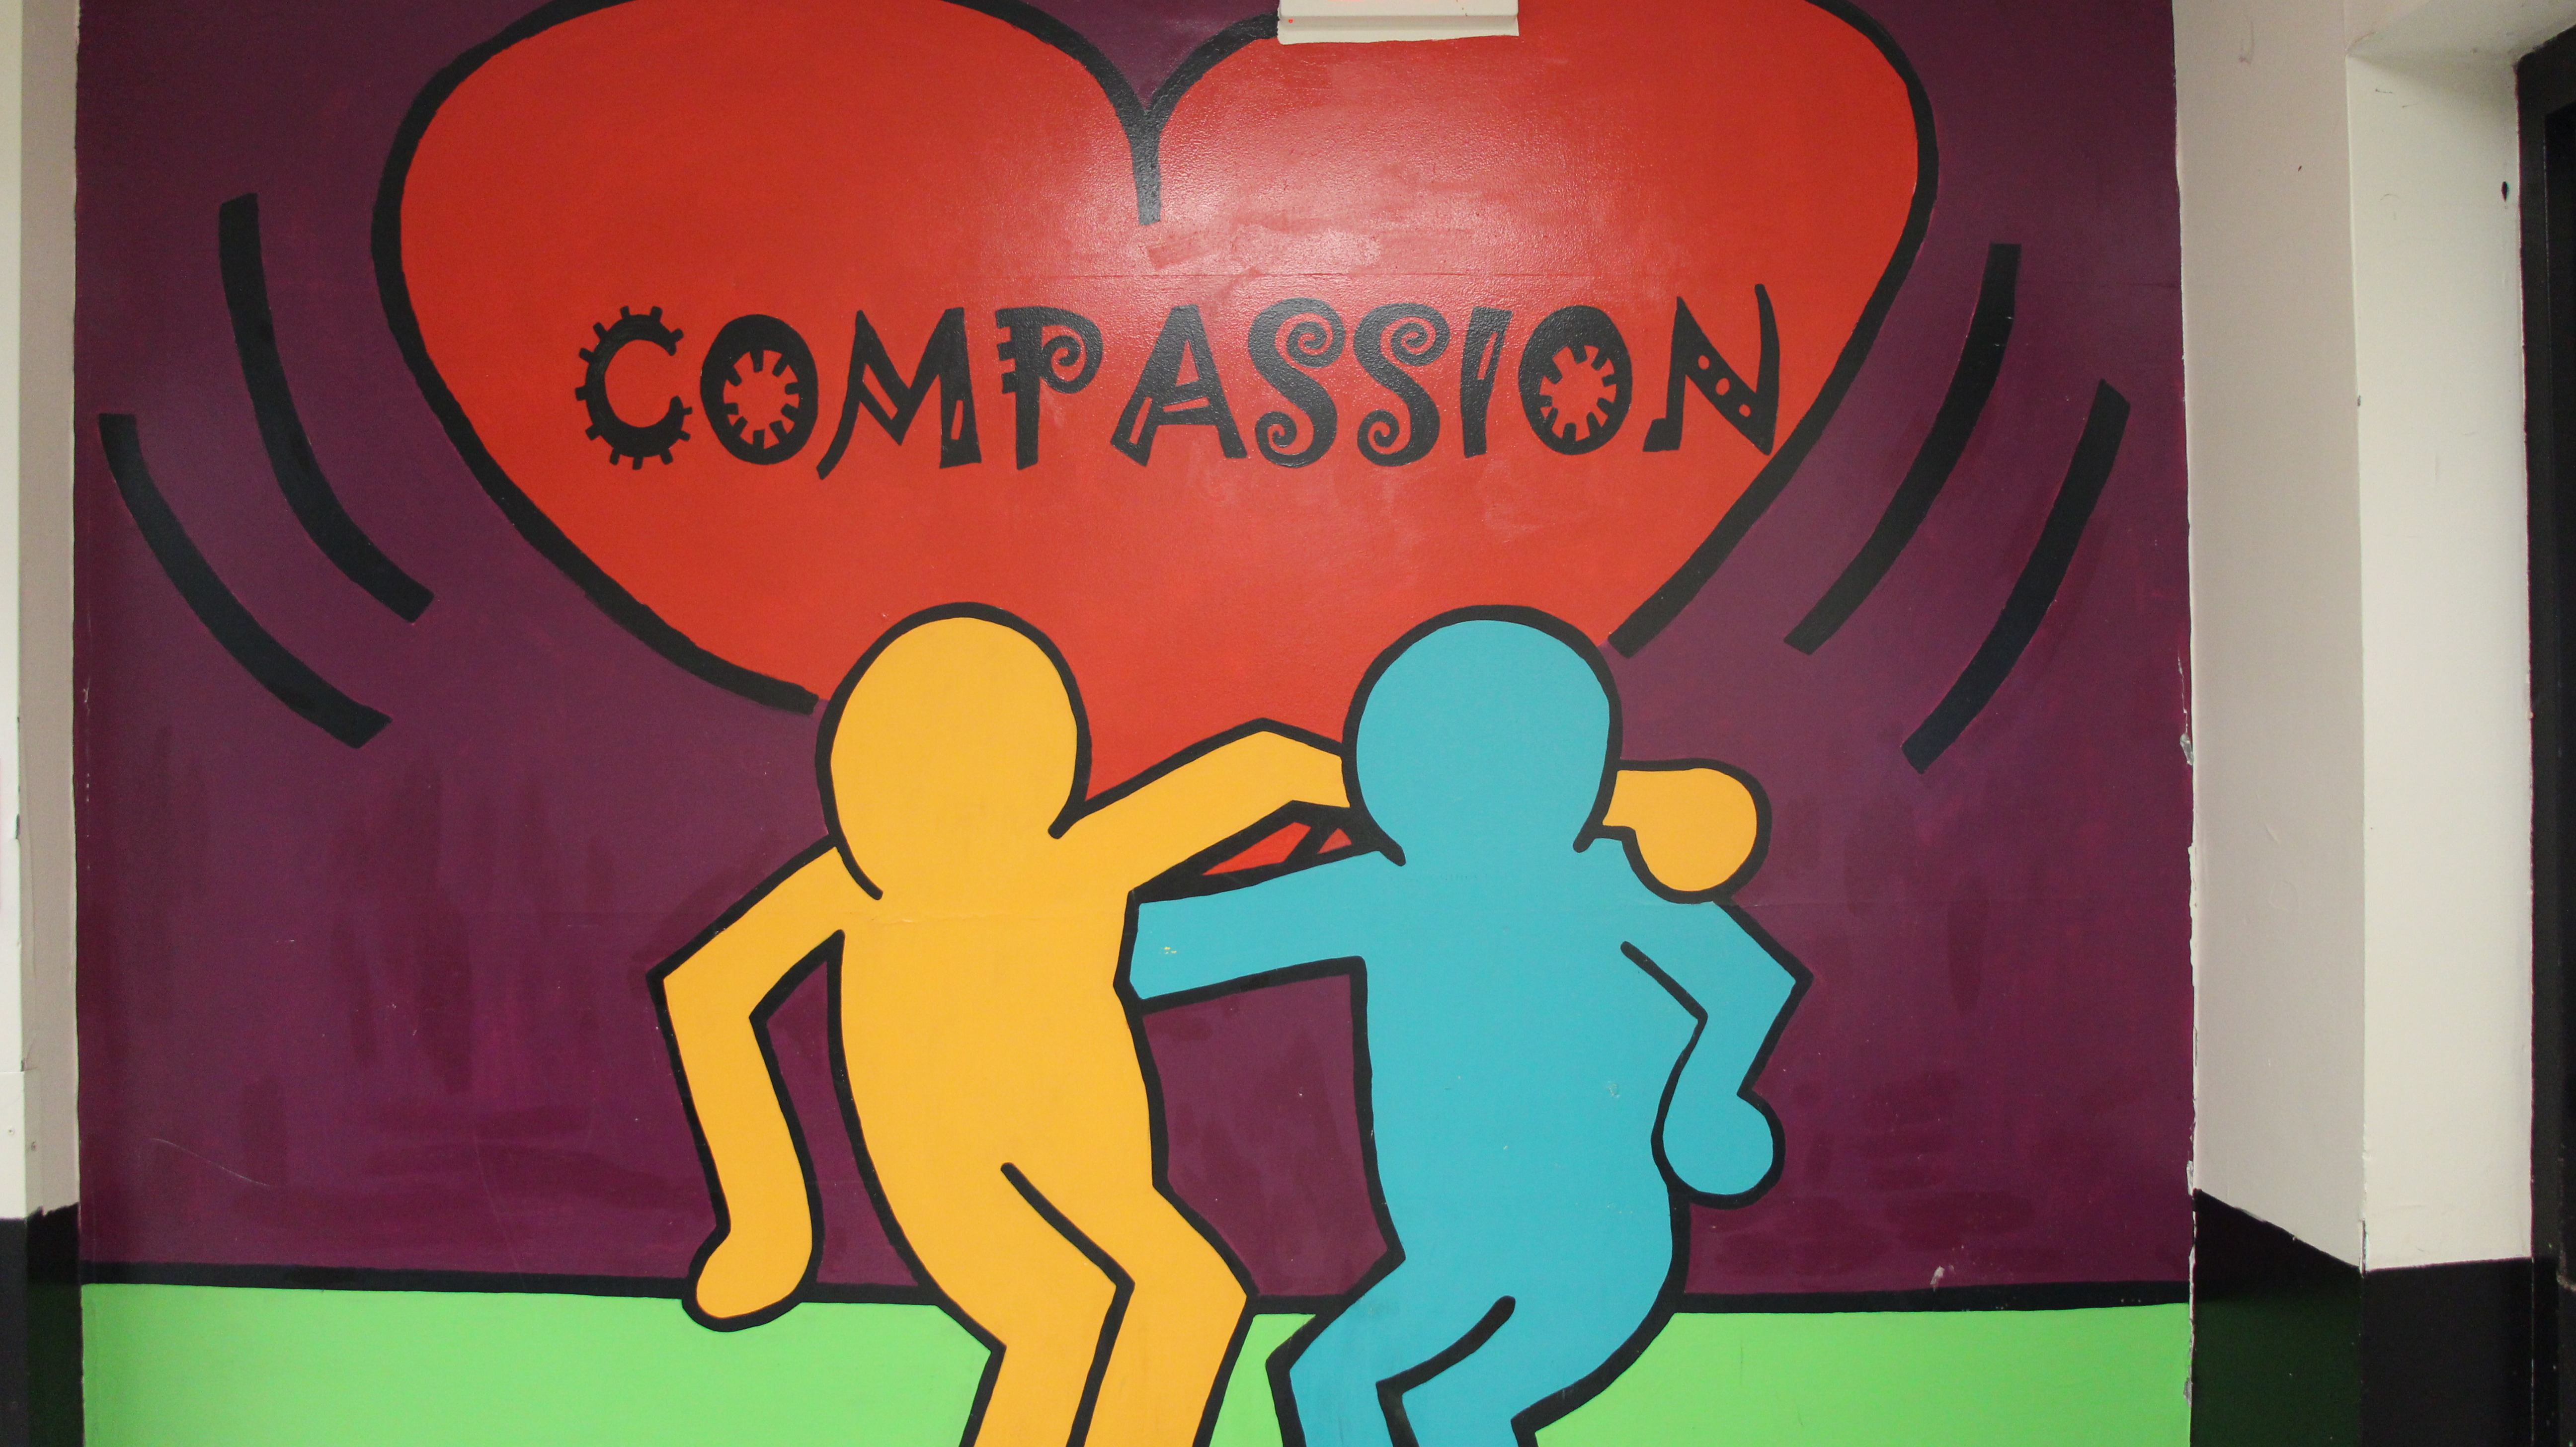 """Murals that promote positive emotions such as compassion were displayed at Windsor Central Middle School of Signs such as """"Bully Free Zone HWY"""" were displayed at C.R. Weeks Elementary School of Windsor Central School District."""